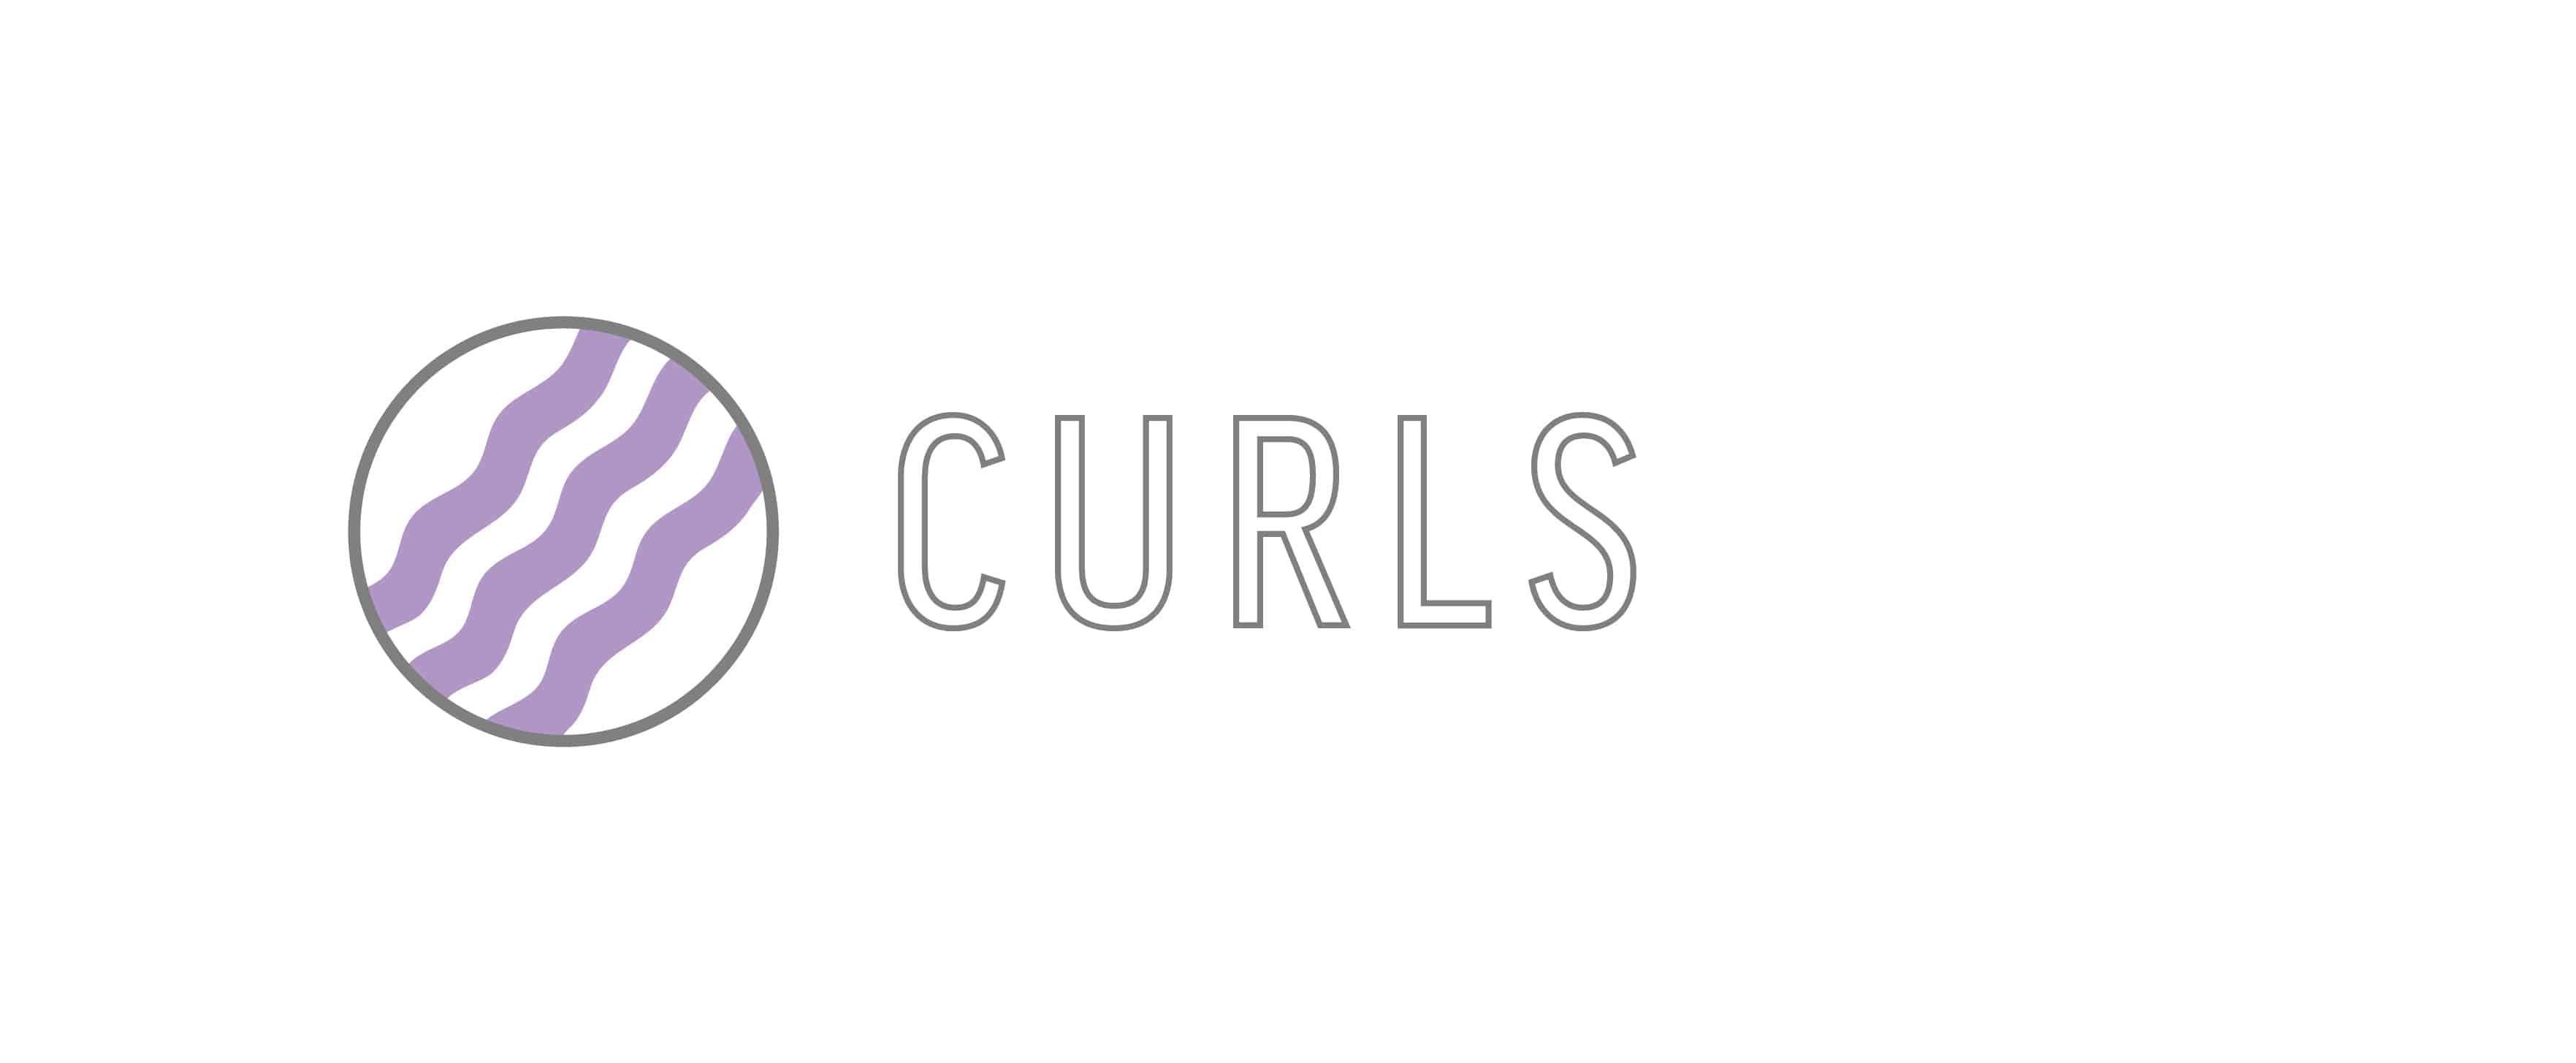 """Curls"" Graphic used for Hair Goals for 50 year olds"